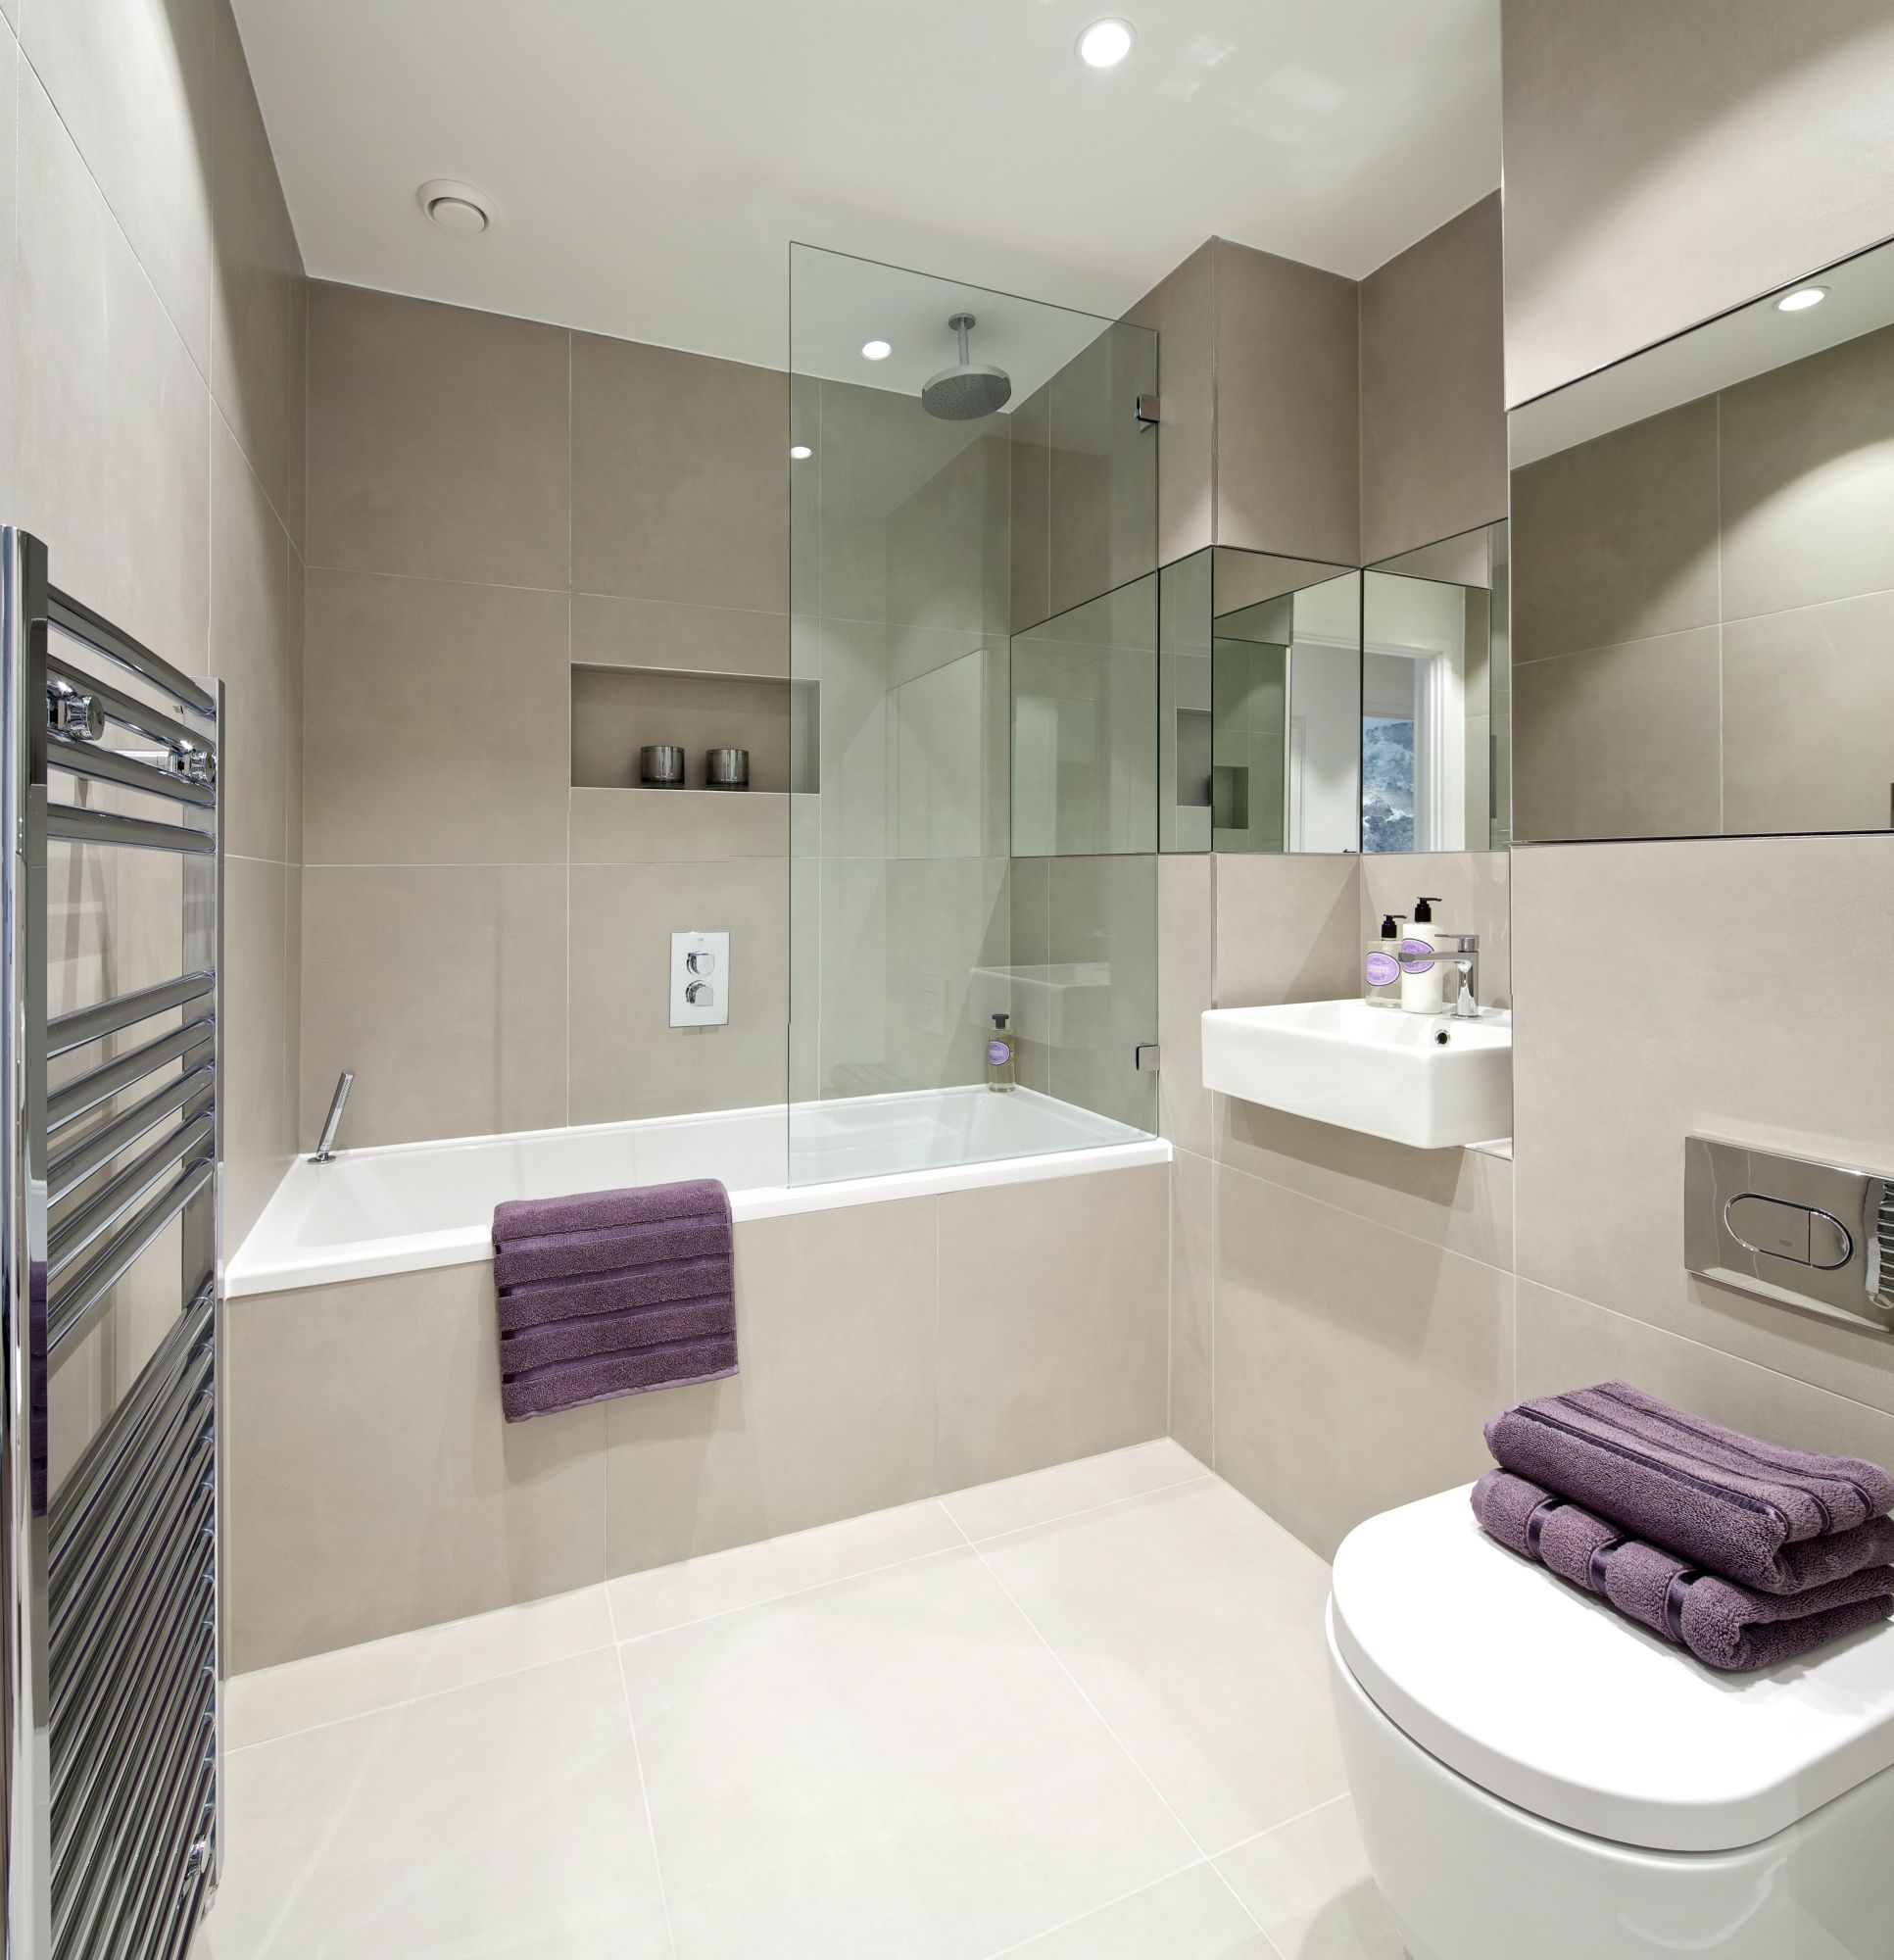 Stunning home interiors bathroom another stunning show Small bathroom decorating ideas uk